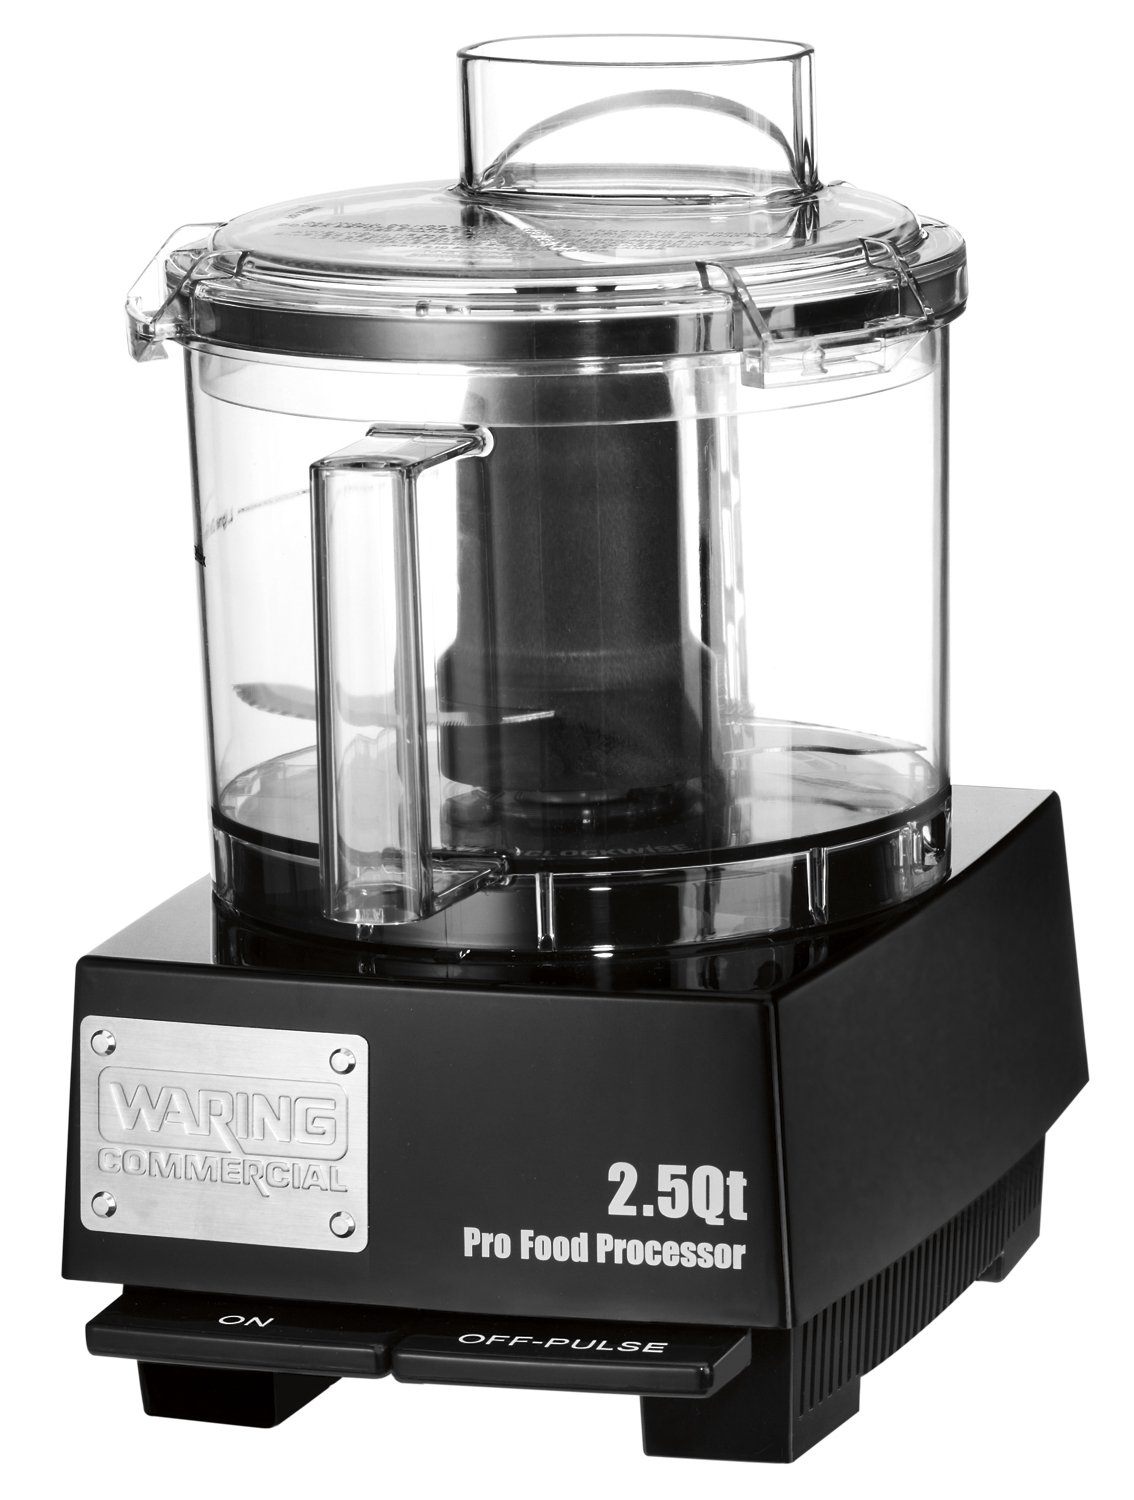 Waring Commercial WFP11SW Sealed Space-Saving Batch Bowl Food Processor with LiquiLock Seal System, 2-1/2-Quart